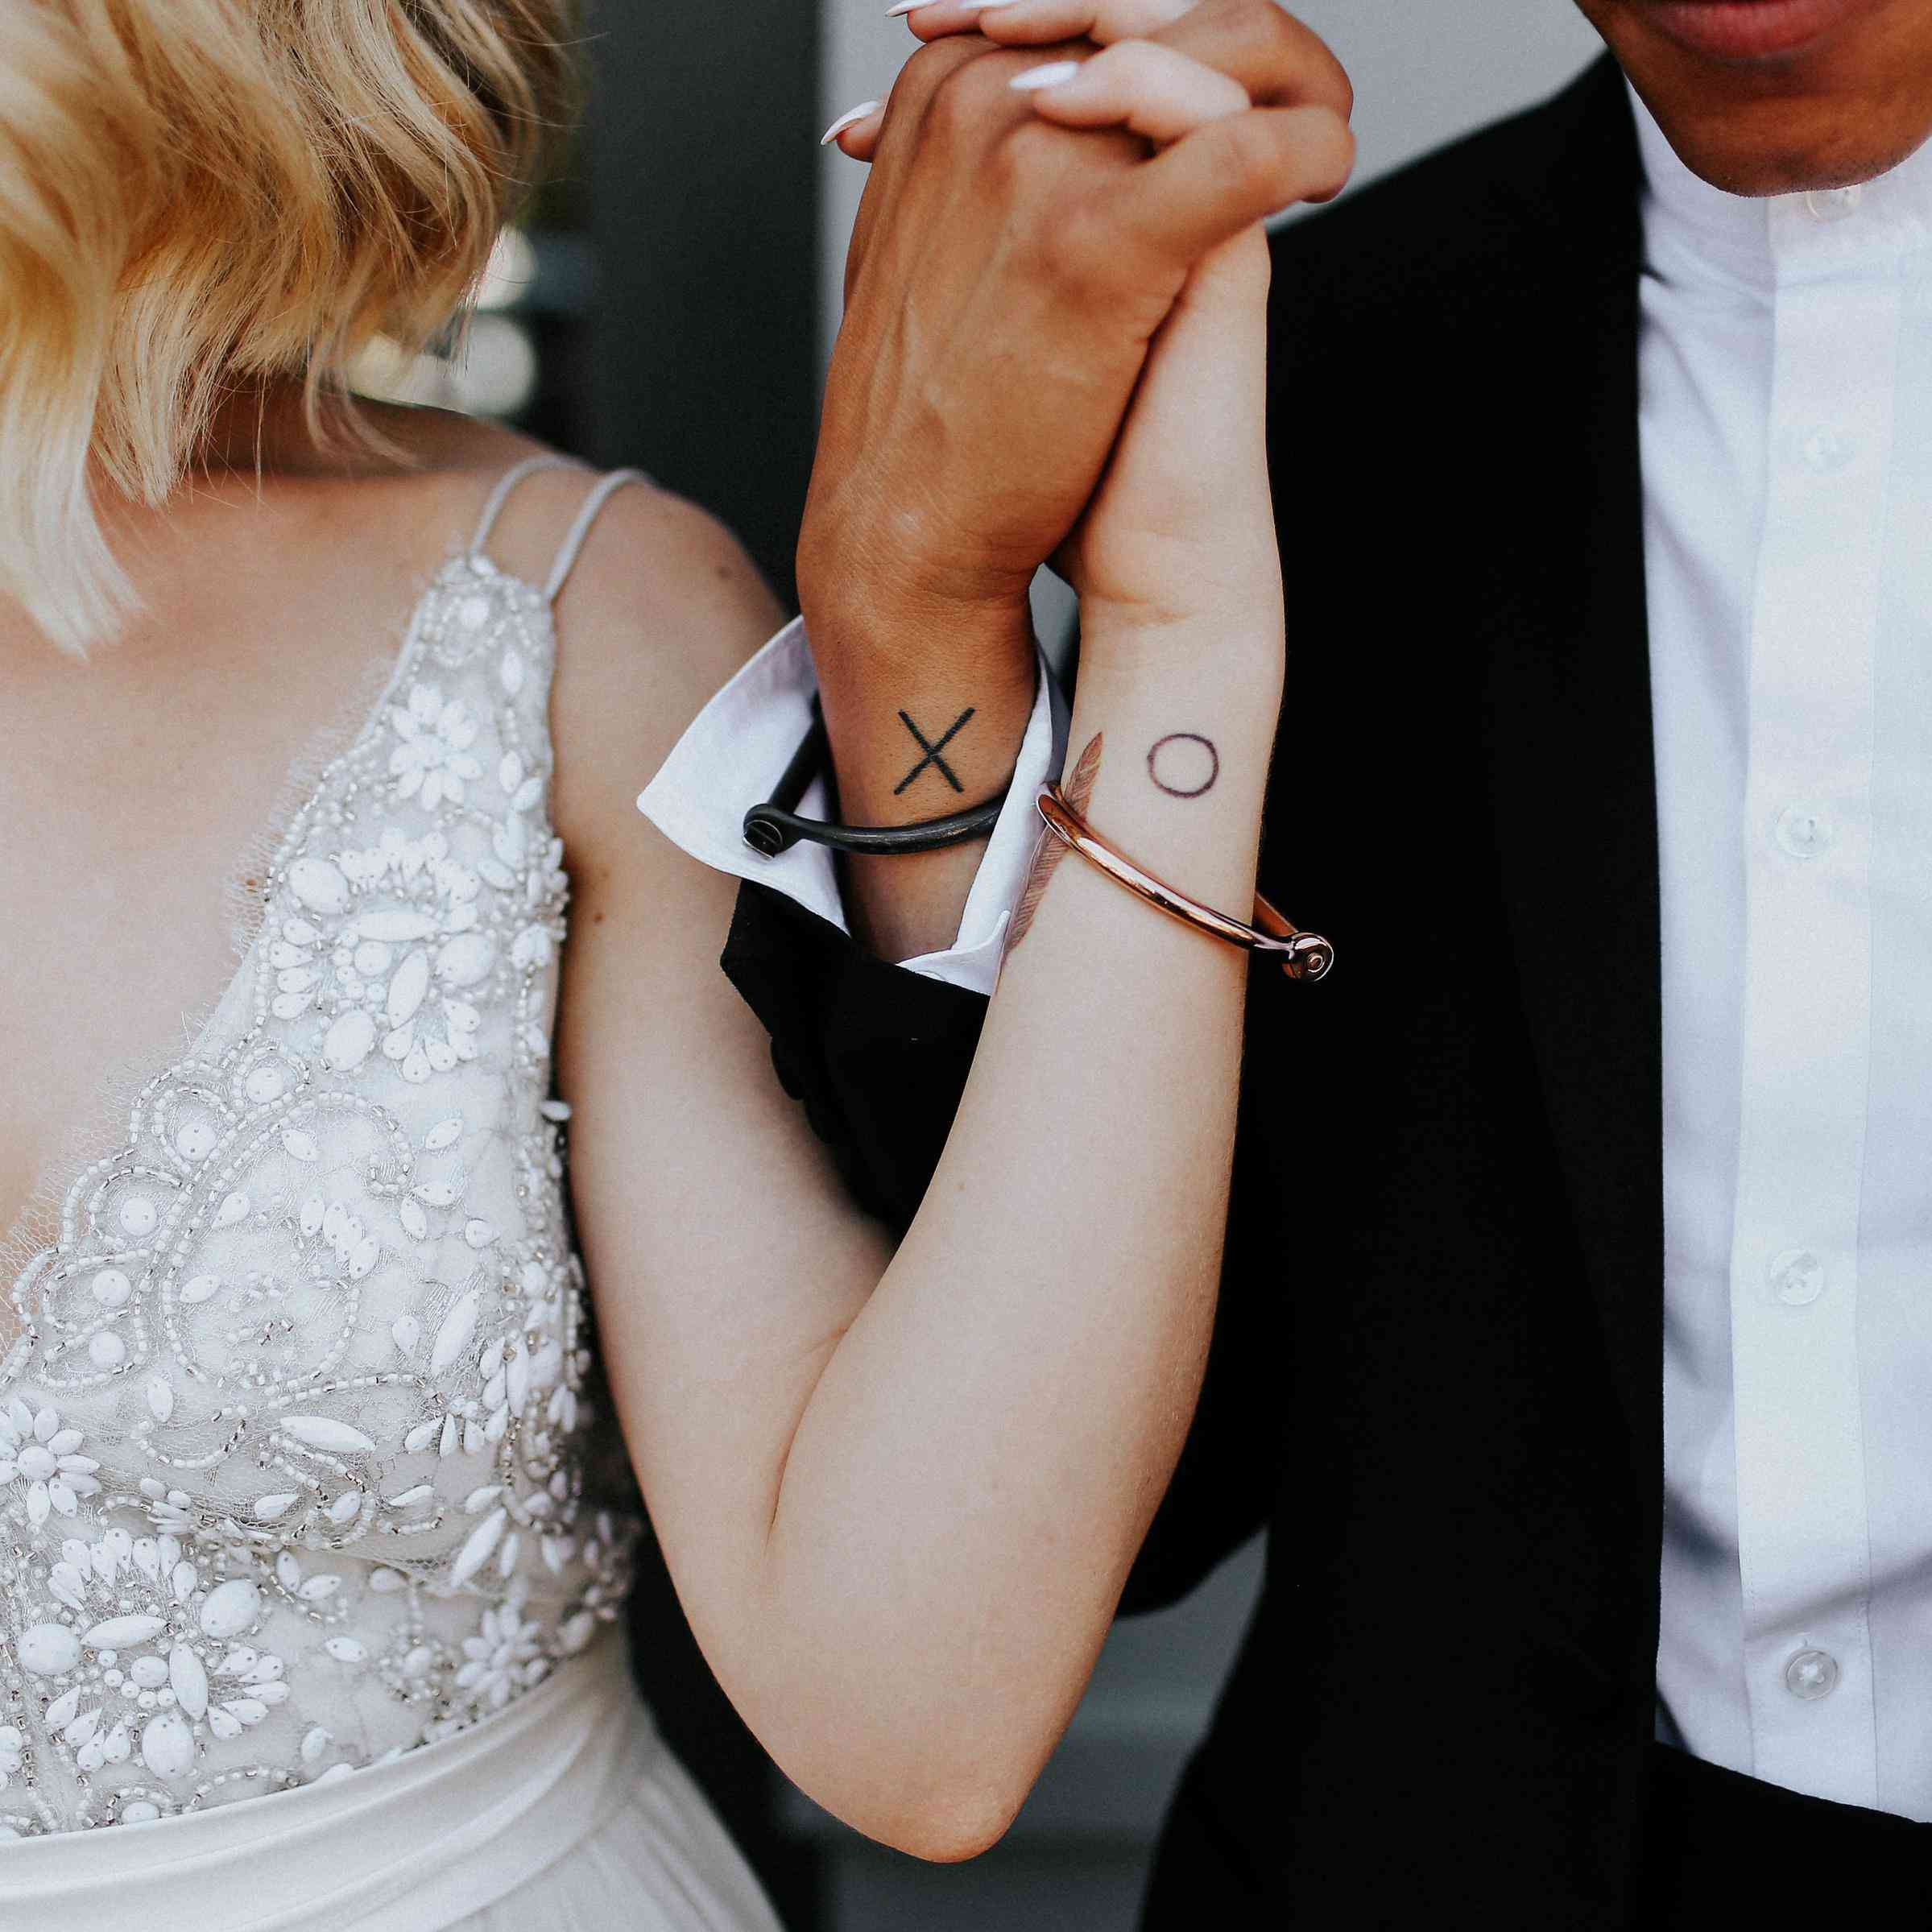 21 Cool Ideas For Couple's Wedding Tattoos